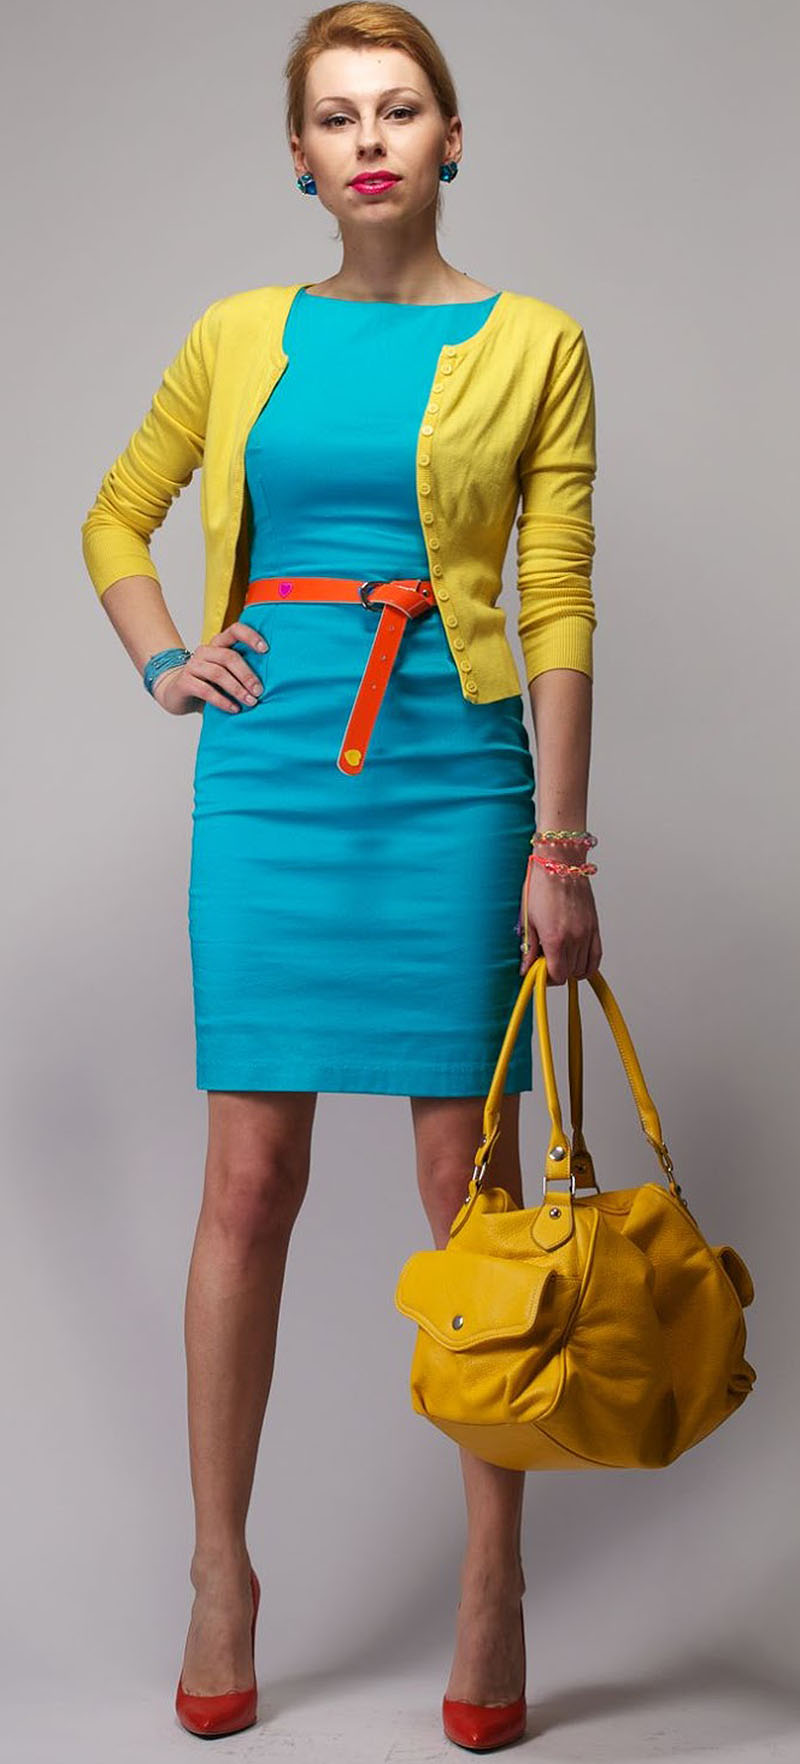 What Color Cardigan to Wear with Turquoise Dress